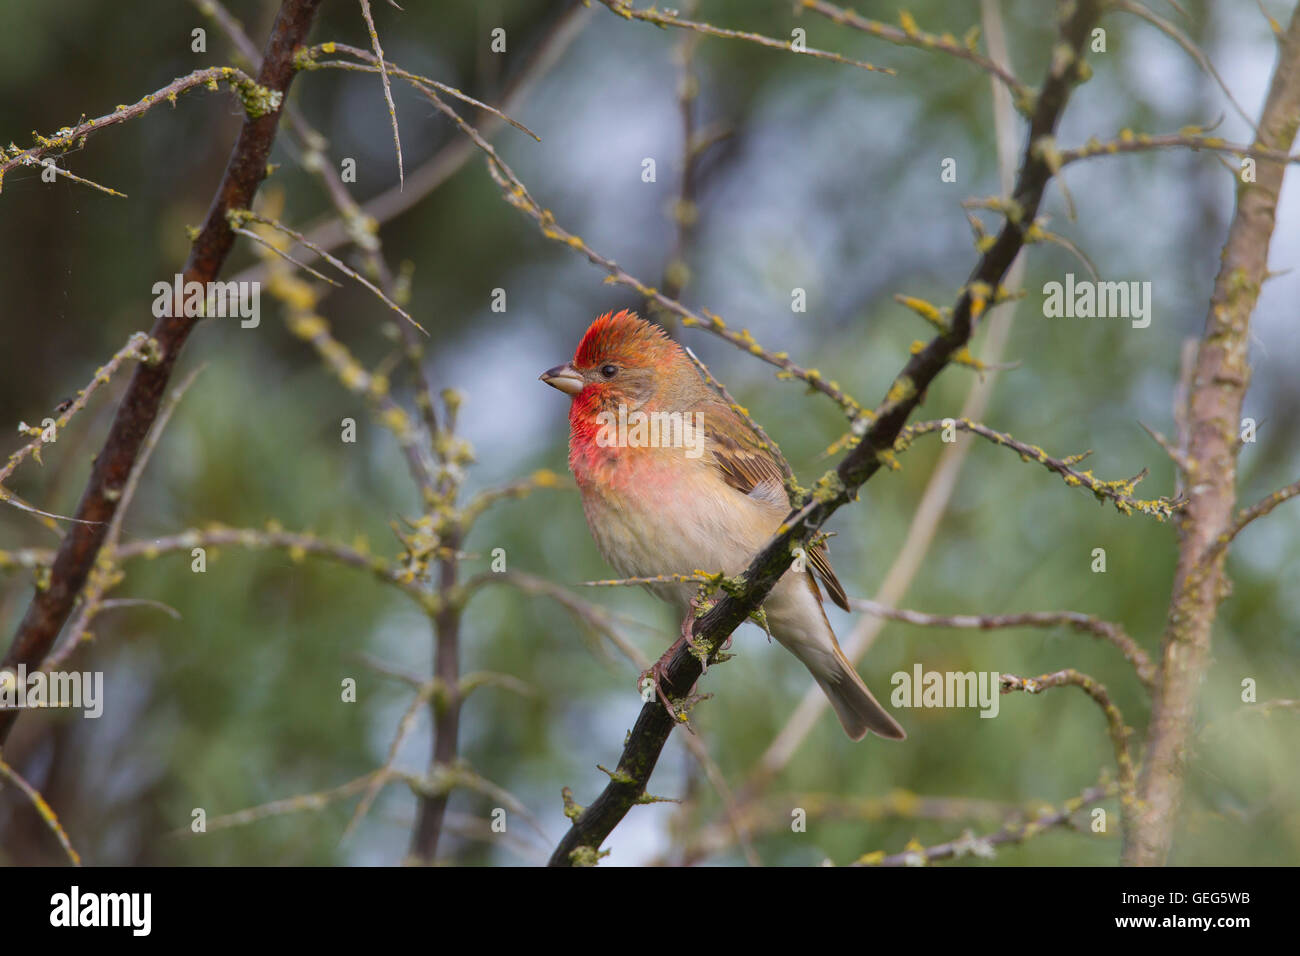 Common rosefinch /  scarlet rosefinch (Carpodacus erythrinus) male perched in tree - Stock Image